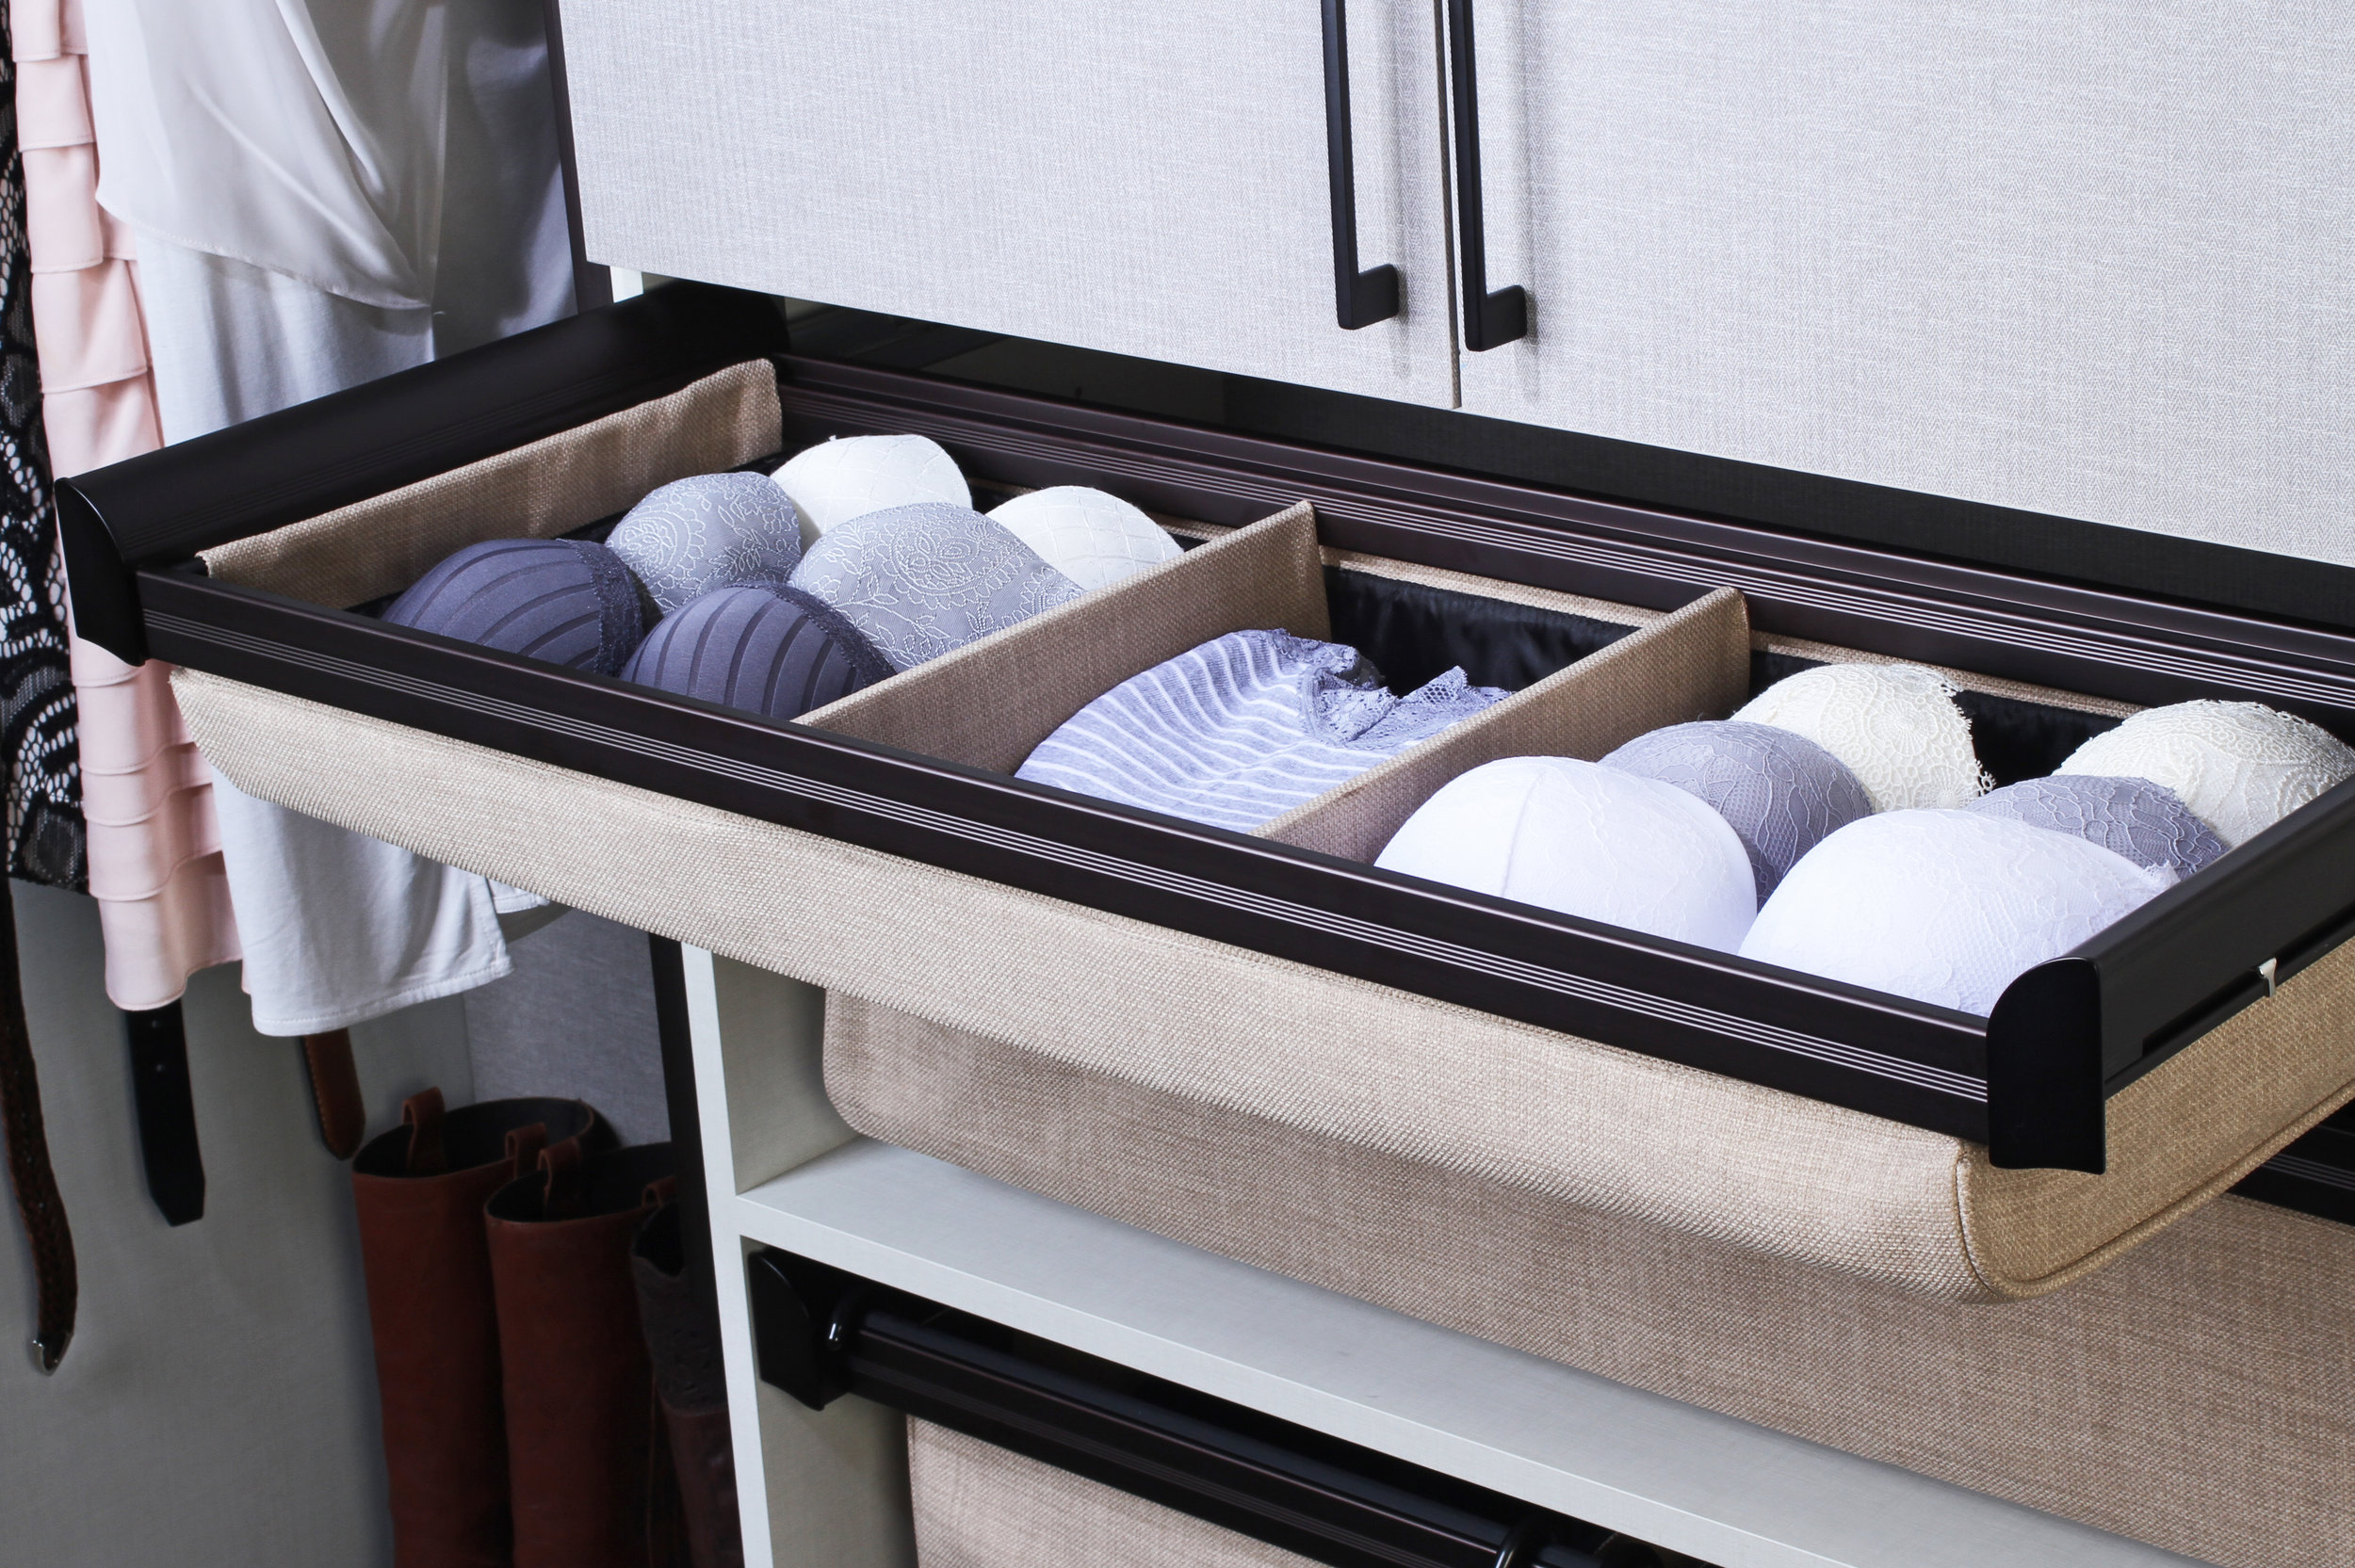 Closet drawer dividers keep clothing in neat stacks and rows.  Call Closets of Tulsa  now for your FREE consultation and 3-D closet design:  918.609.0214